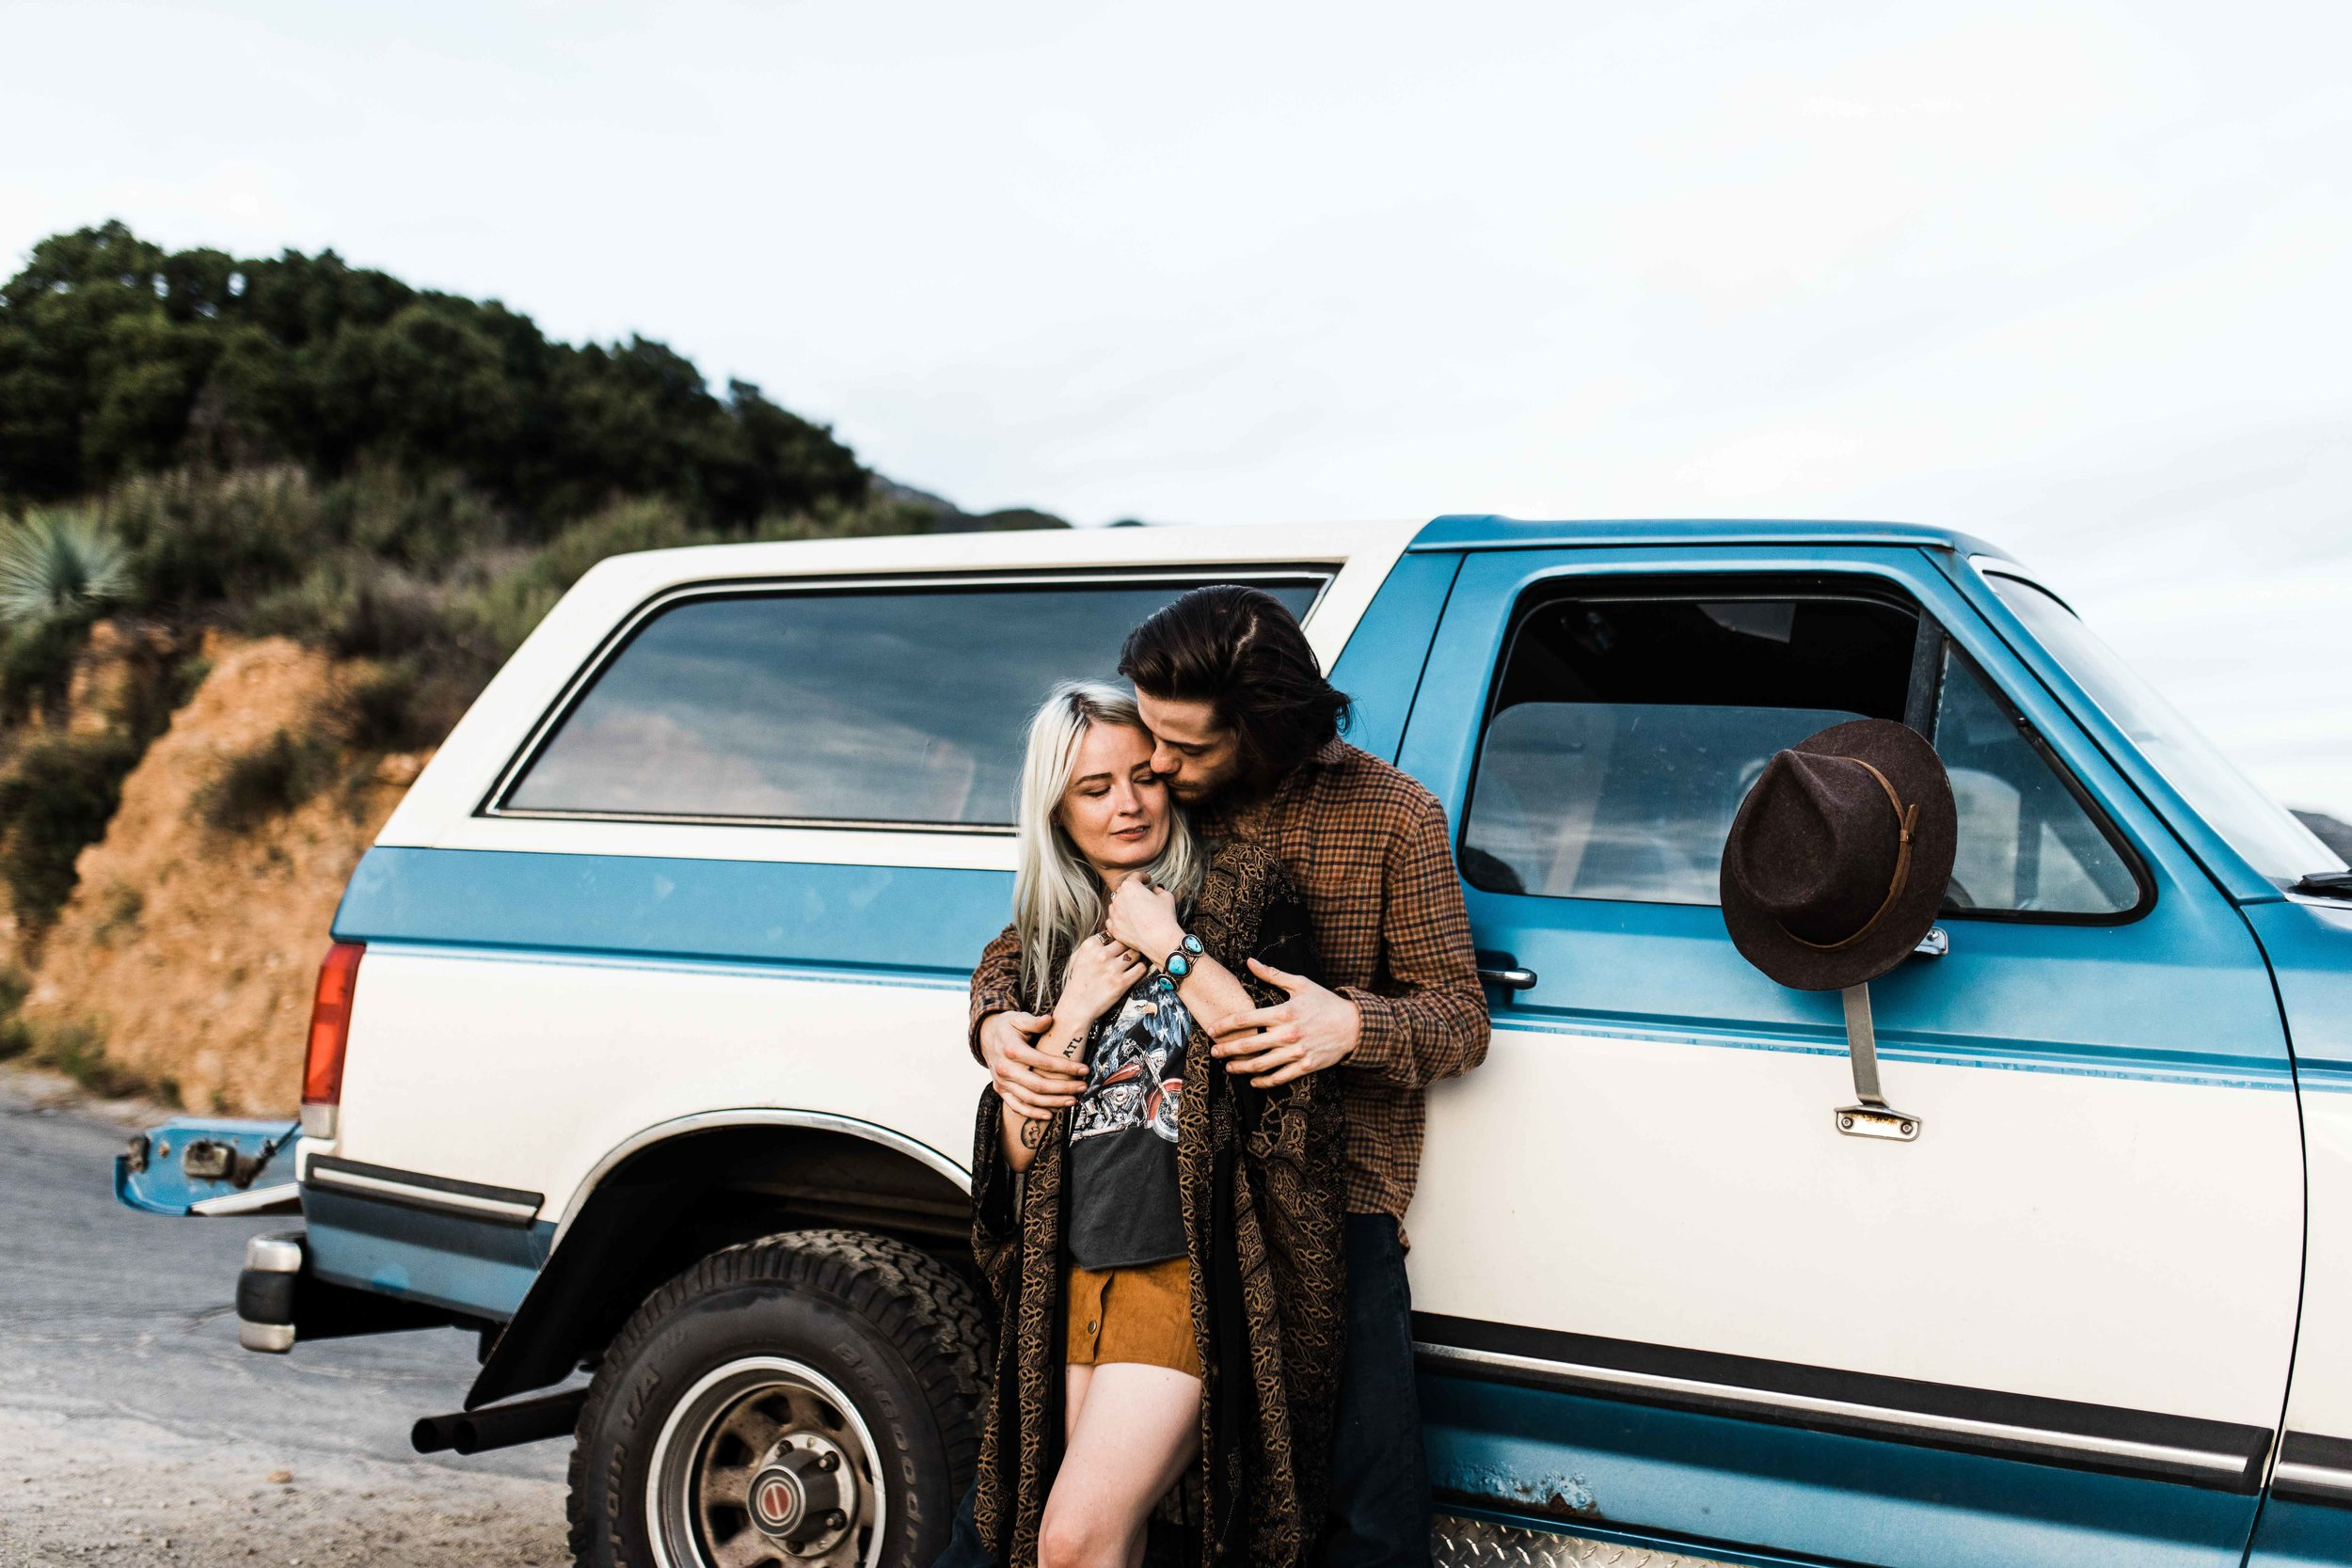 Tara&Will-Clarisse-Rae-Photo-&-Video-Southern-California-Wedding-Photographer-&-Videographer-Los-Angeles-Engagement-Session_31